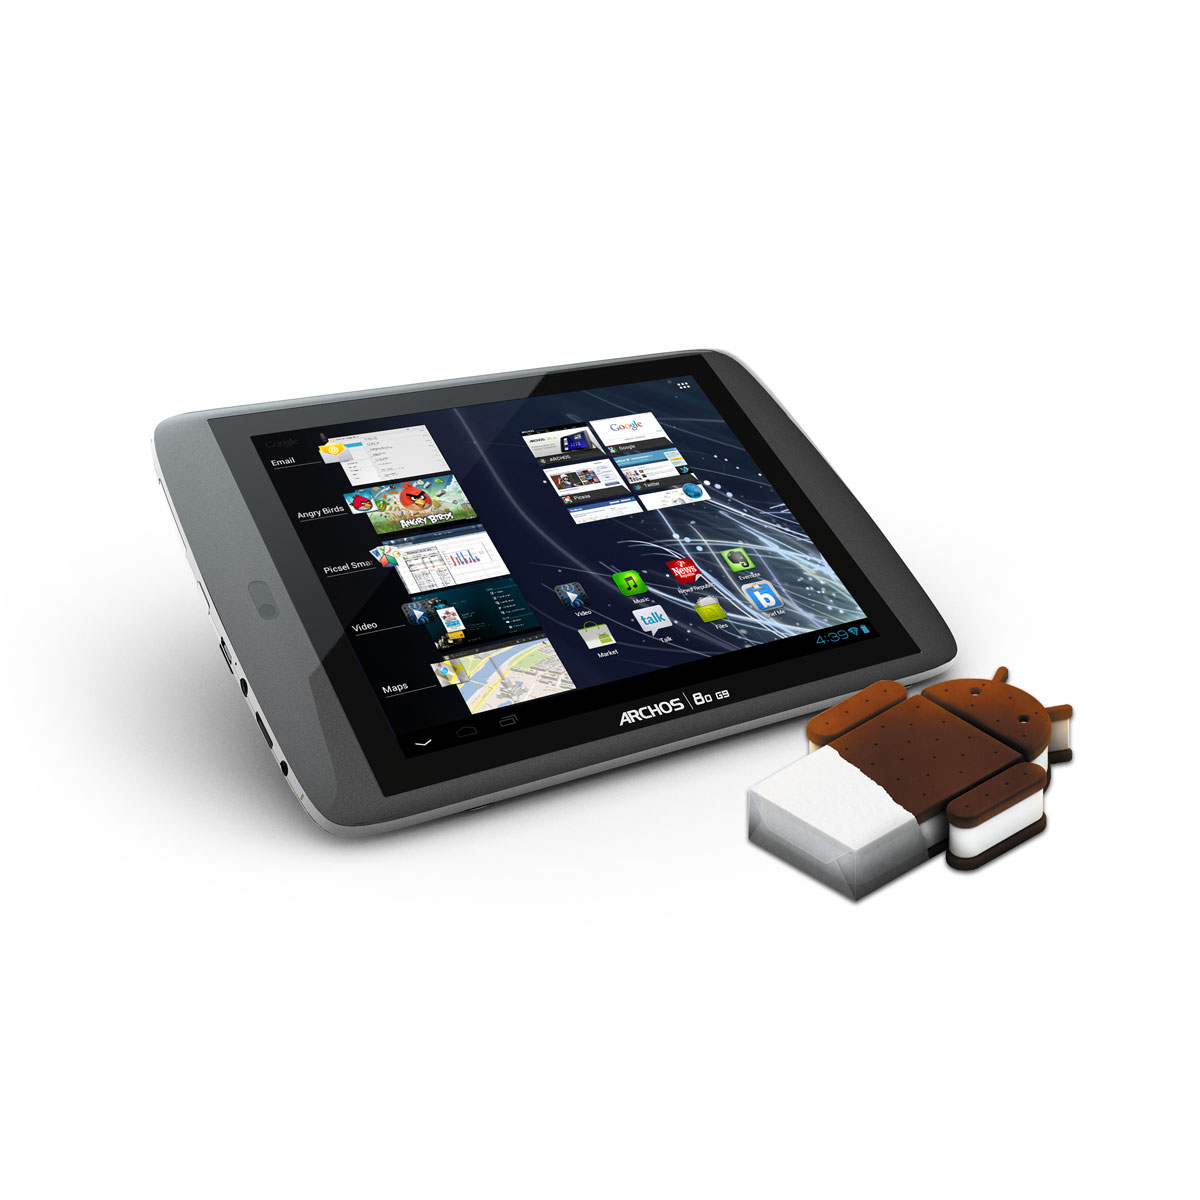 """Tablette tactile Archos 80 G9 Turbo ICS 250 Go Tablette Internet - OMAP 4 Smart multi-core 1.5 GHz 250 Go 8"""" LCD tactile Wi-Fi N/Bluetooth Webcam Android 4.0"""